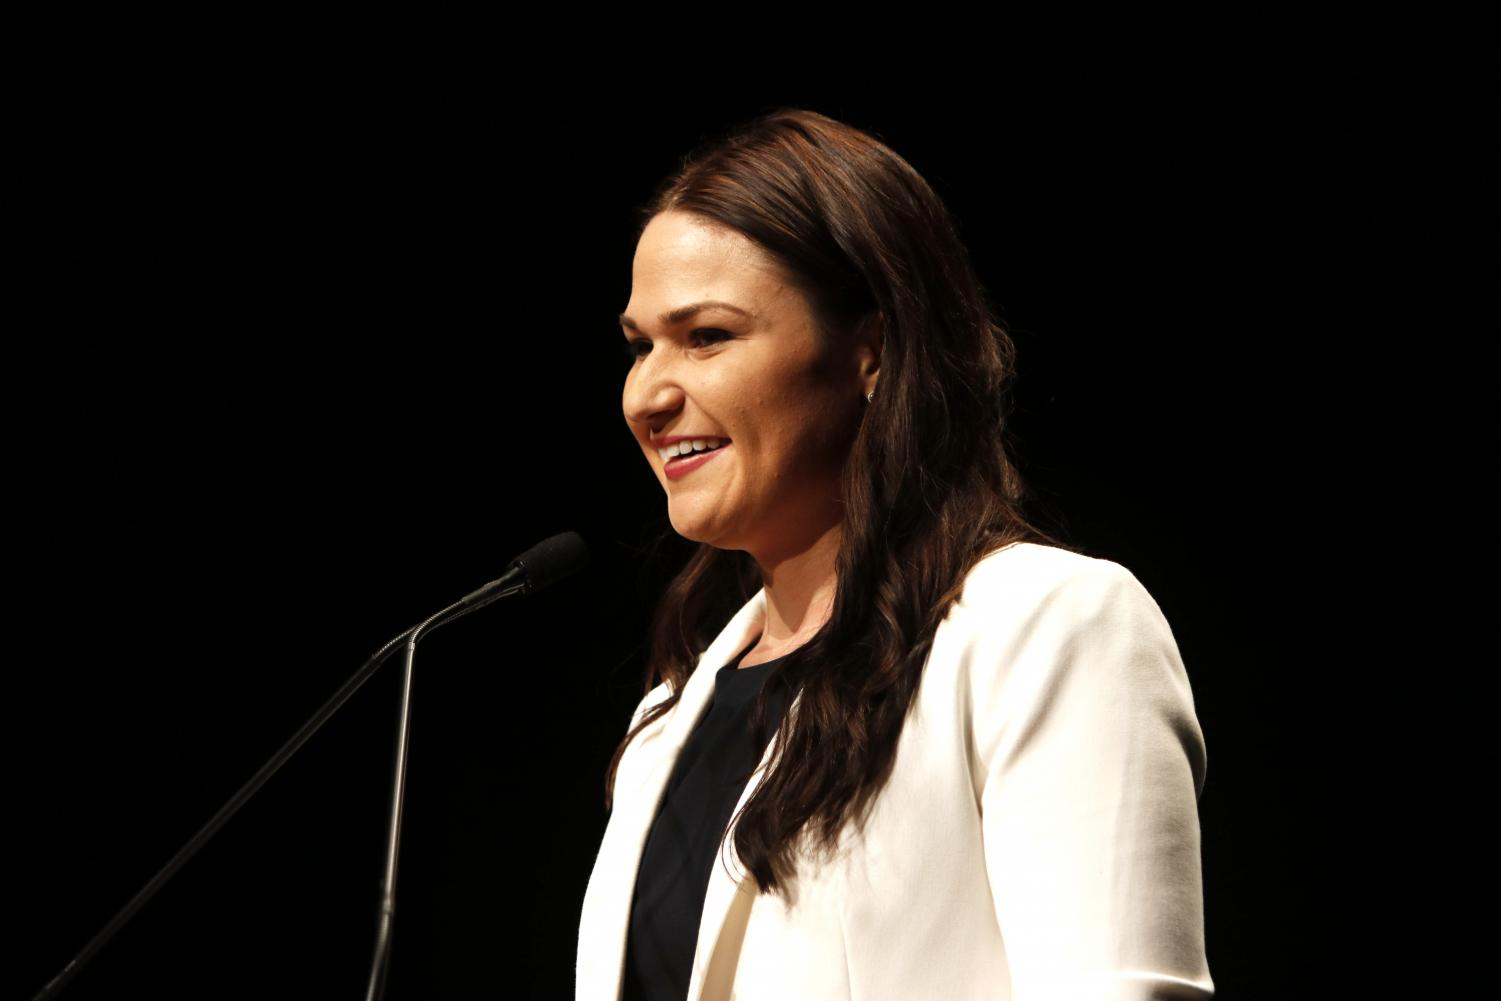 Abby Finkenauer participates in a debate with Congressman Rod Blum, R-Iowa, at the University of Northern Iowa on Friday, Oct. 5.